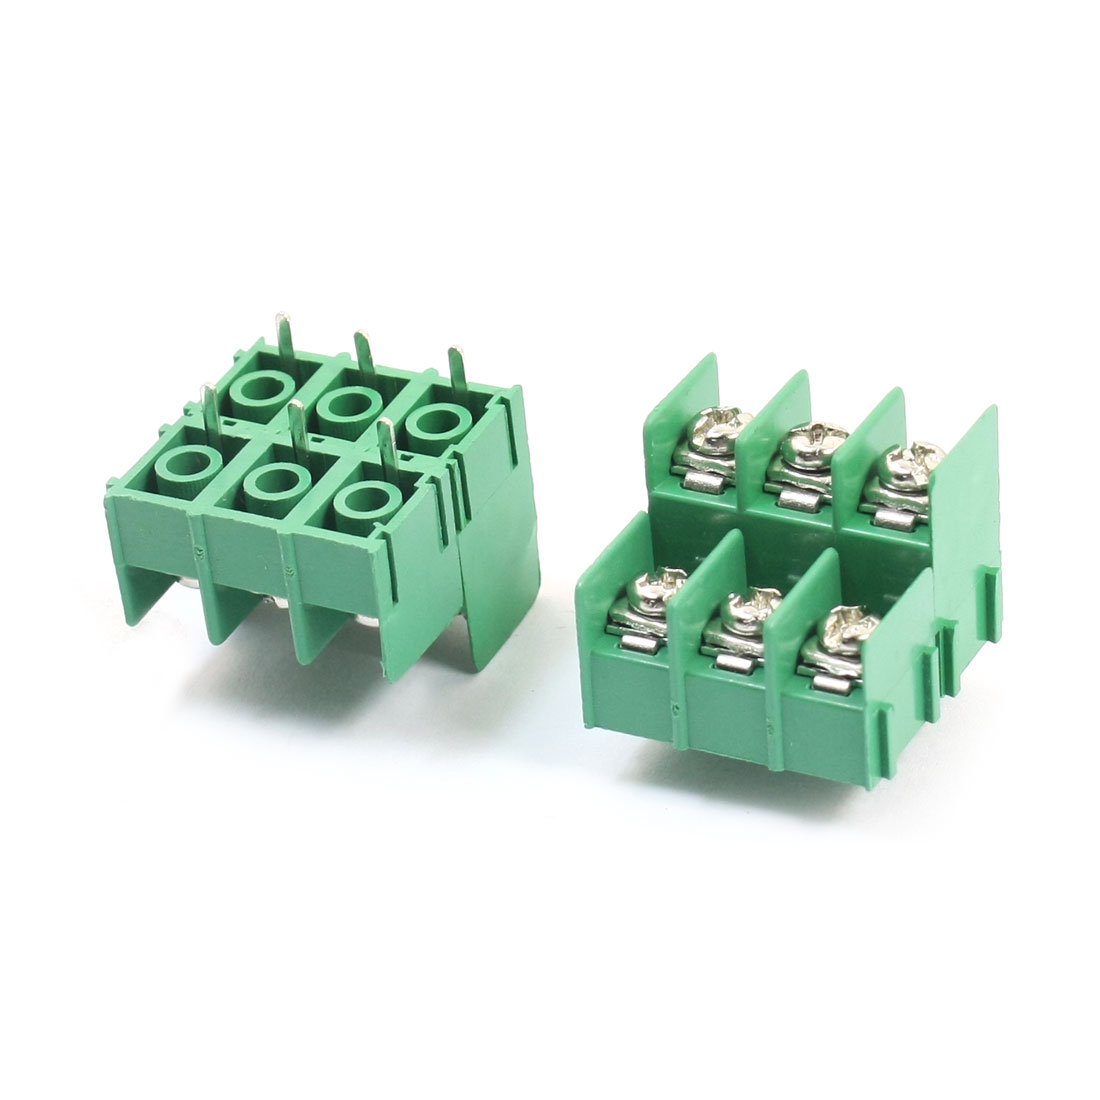 2Pcs KF7.62HL 300V 3A 7.62mm Spacing 6Pin Through Hole Plug in PCB Mounting Screw Terminal Barrier Block Connector